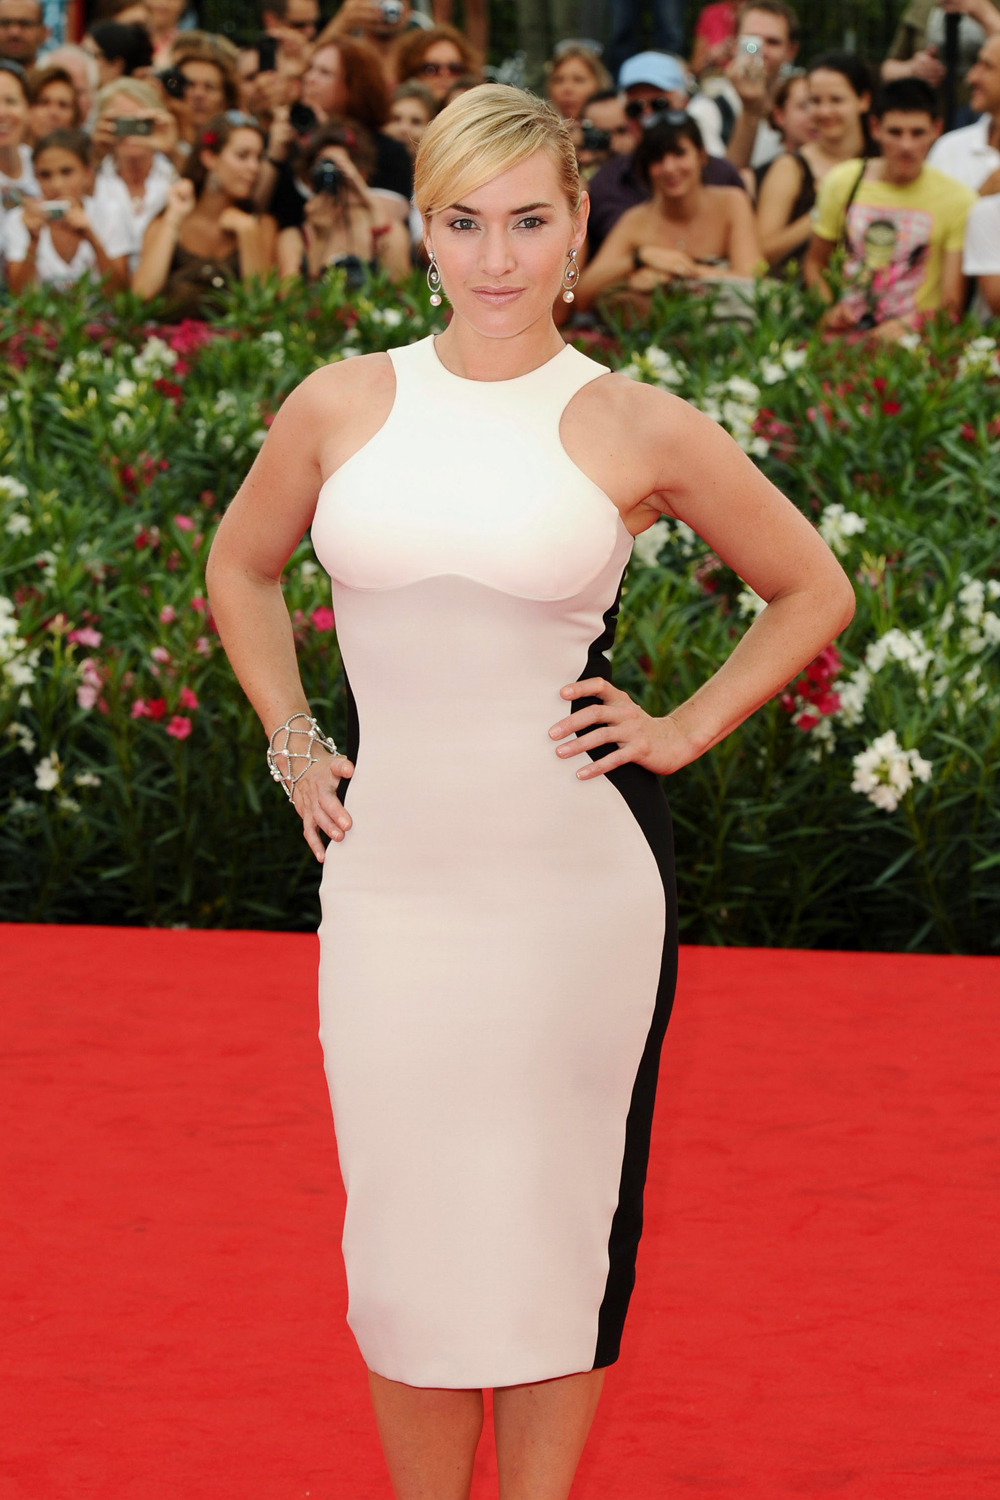 Are not Kate winslet great body